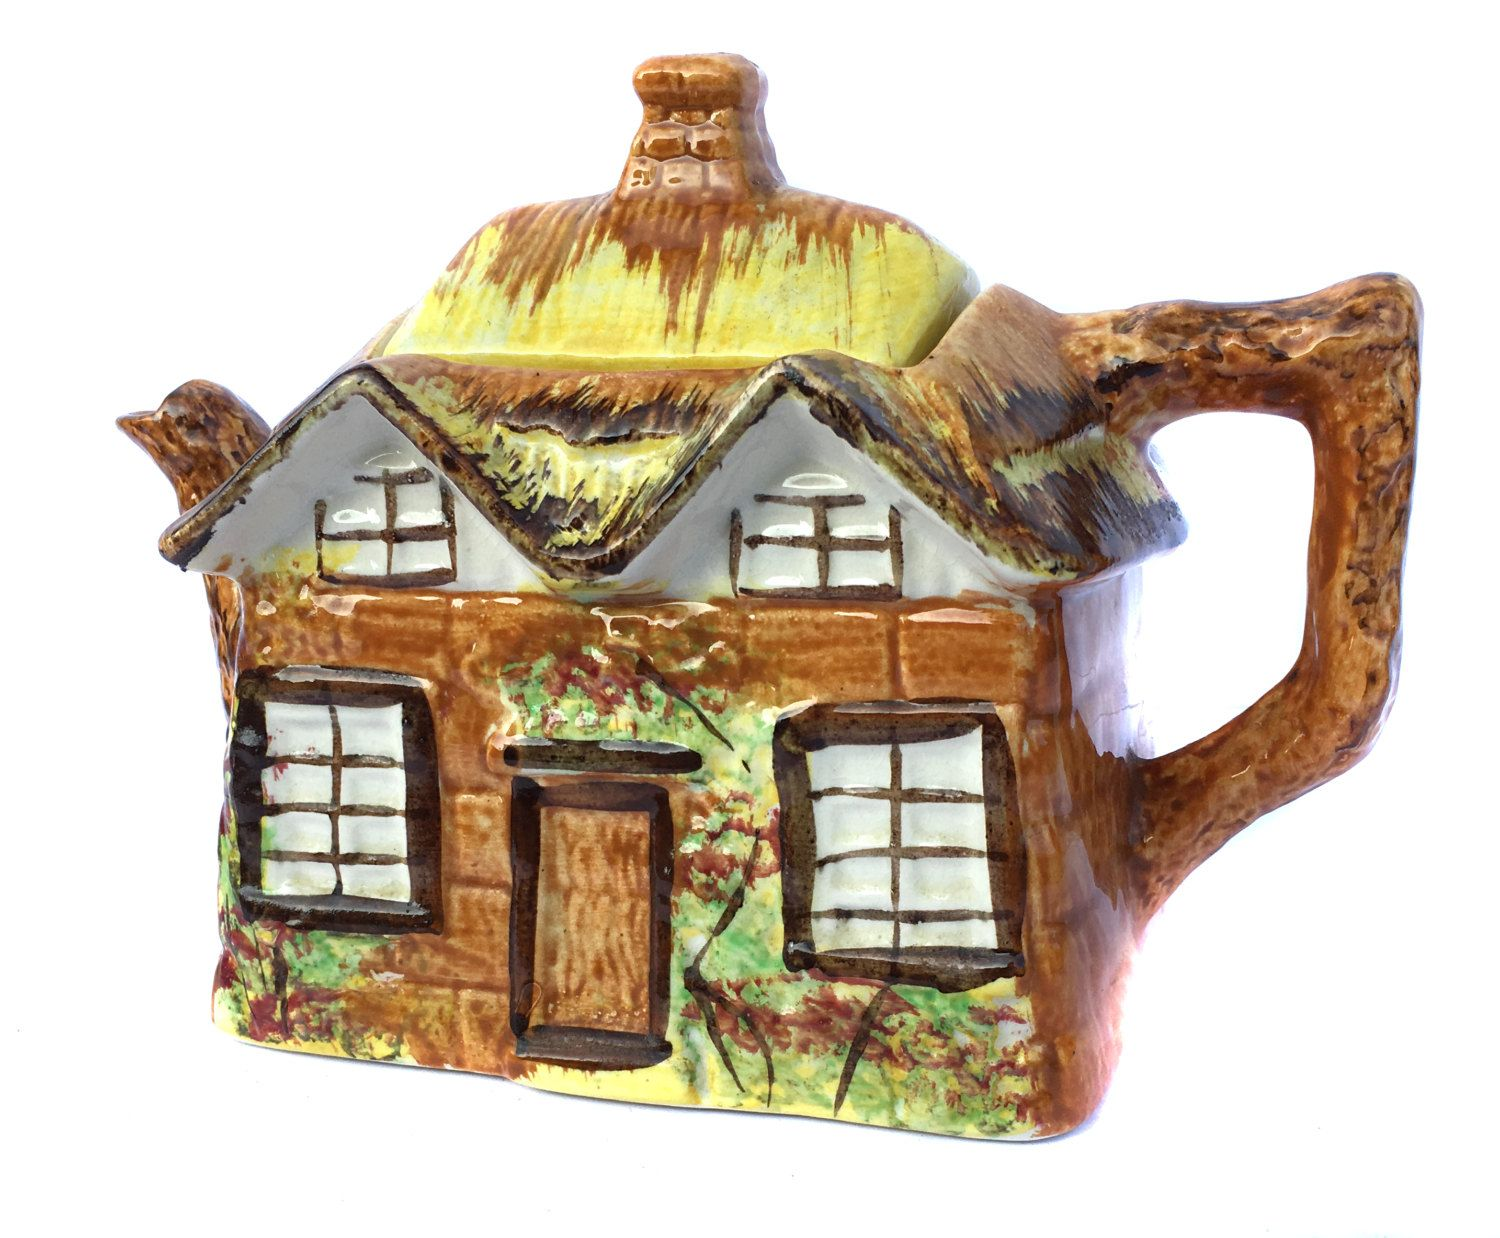 1950s Price Bros Ye Olde Cottage Teapot Rustic Teapot Primitive Teapot Vintage Teapot English Thatched Cottage Country Kitchen Retro Kitchen By Biminicricket On